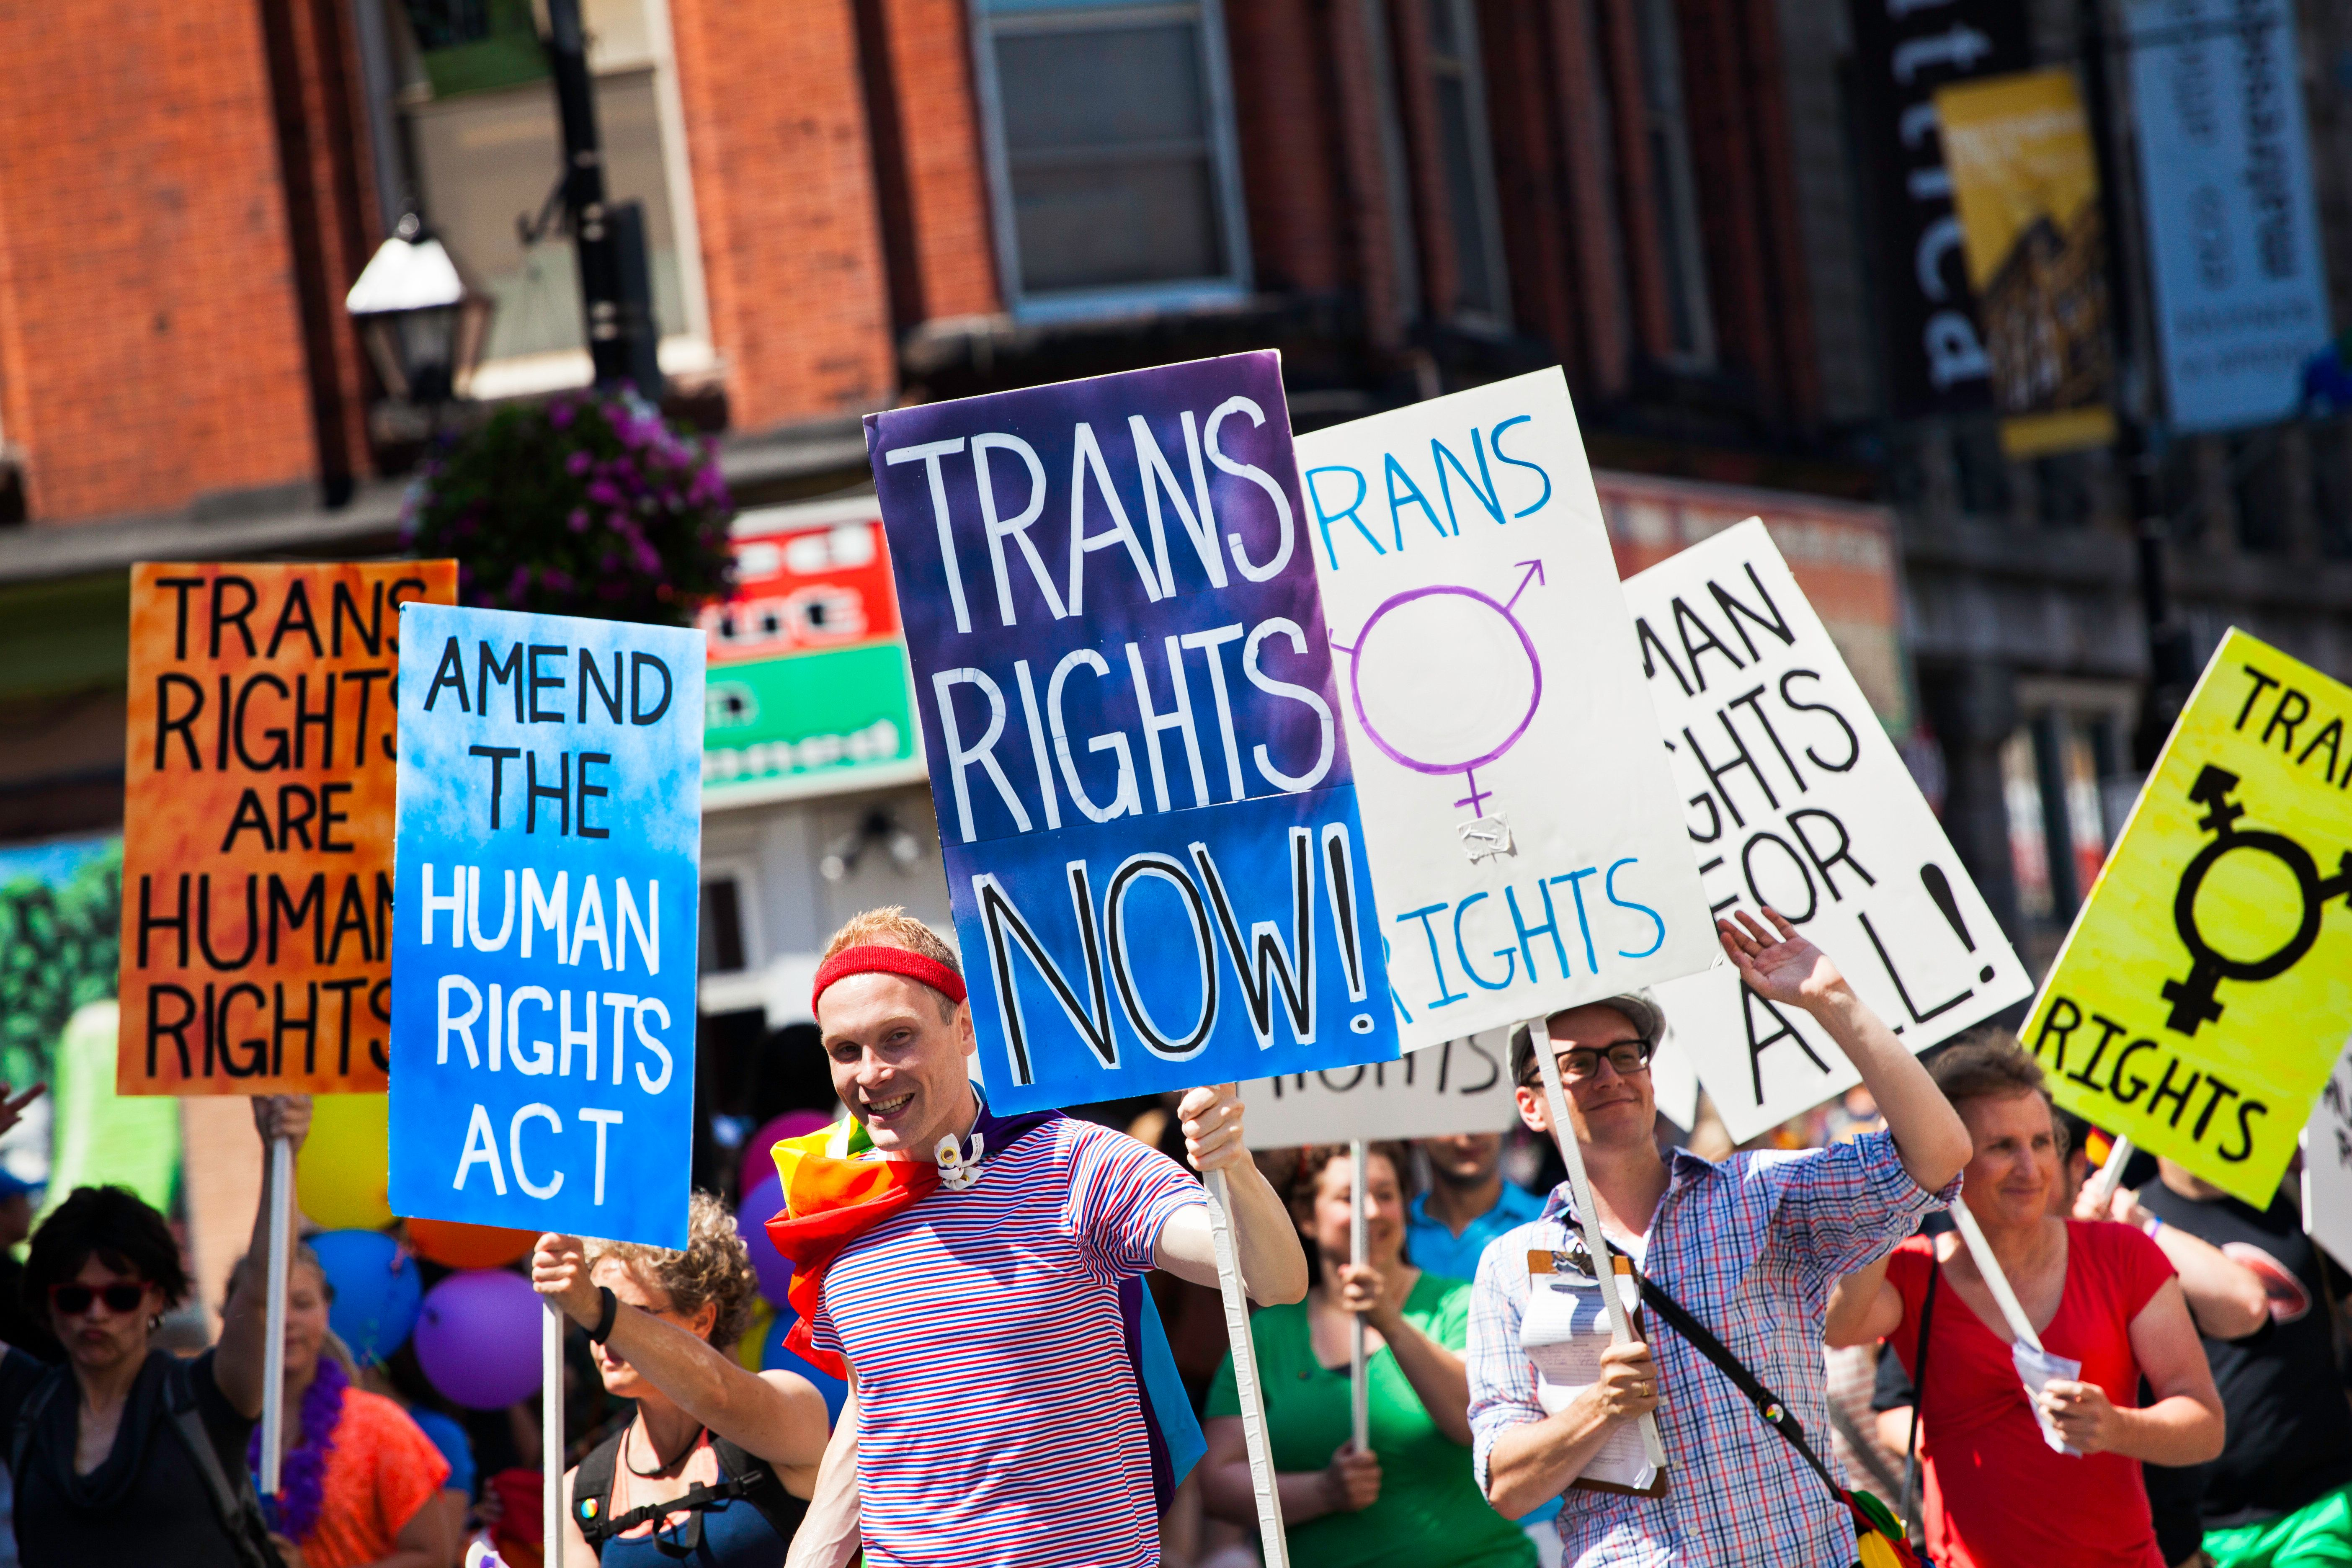 Halifax, Nova Scotia, Canada - July 28, 2012: Participants in the Halifax Pride Parade hold numerous signs as they walk down Barrington Street in the downtown district.  Signs include, 'Trans Rights Now', 'Amend the Human Rights Act', and 'Human Rights for All' among others.  Participants smile and some wave to the crowd.  Downtown business visible in background.  The Halifax Pride Parade has over 150 floats and continues through the downtown area of Halifax, Nova Scotia.